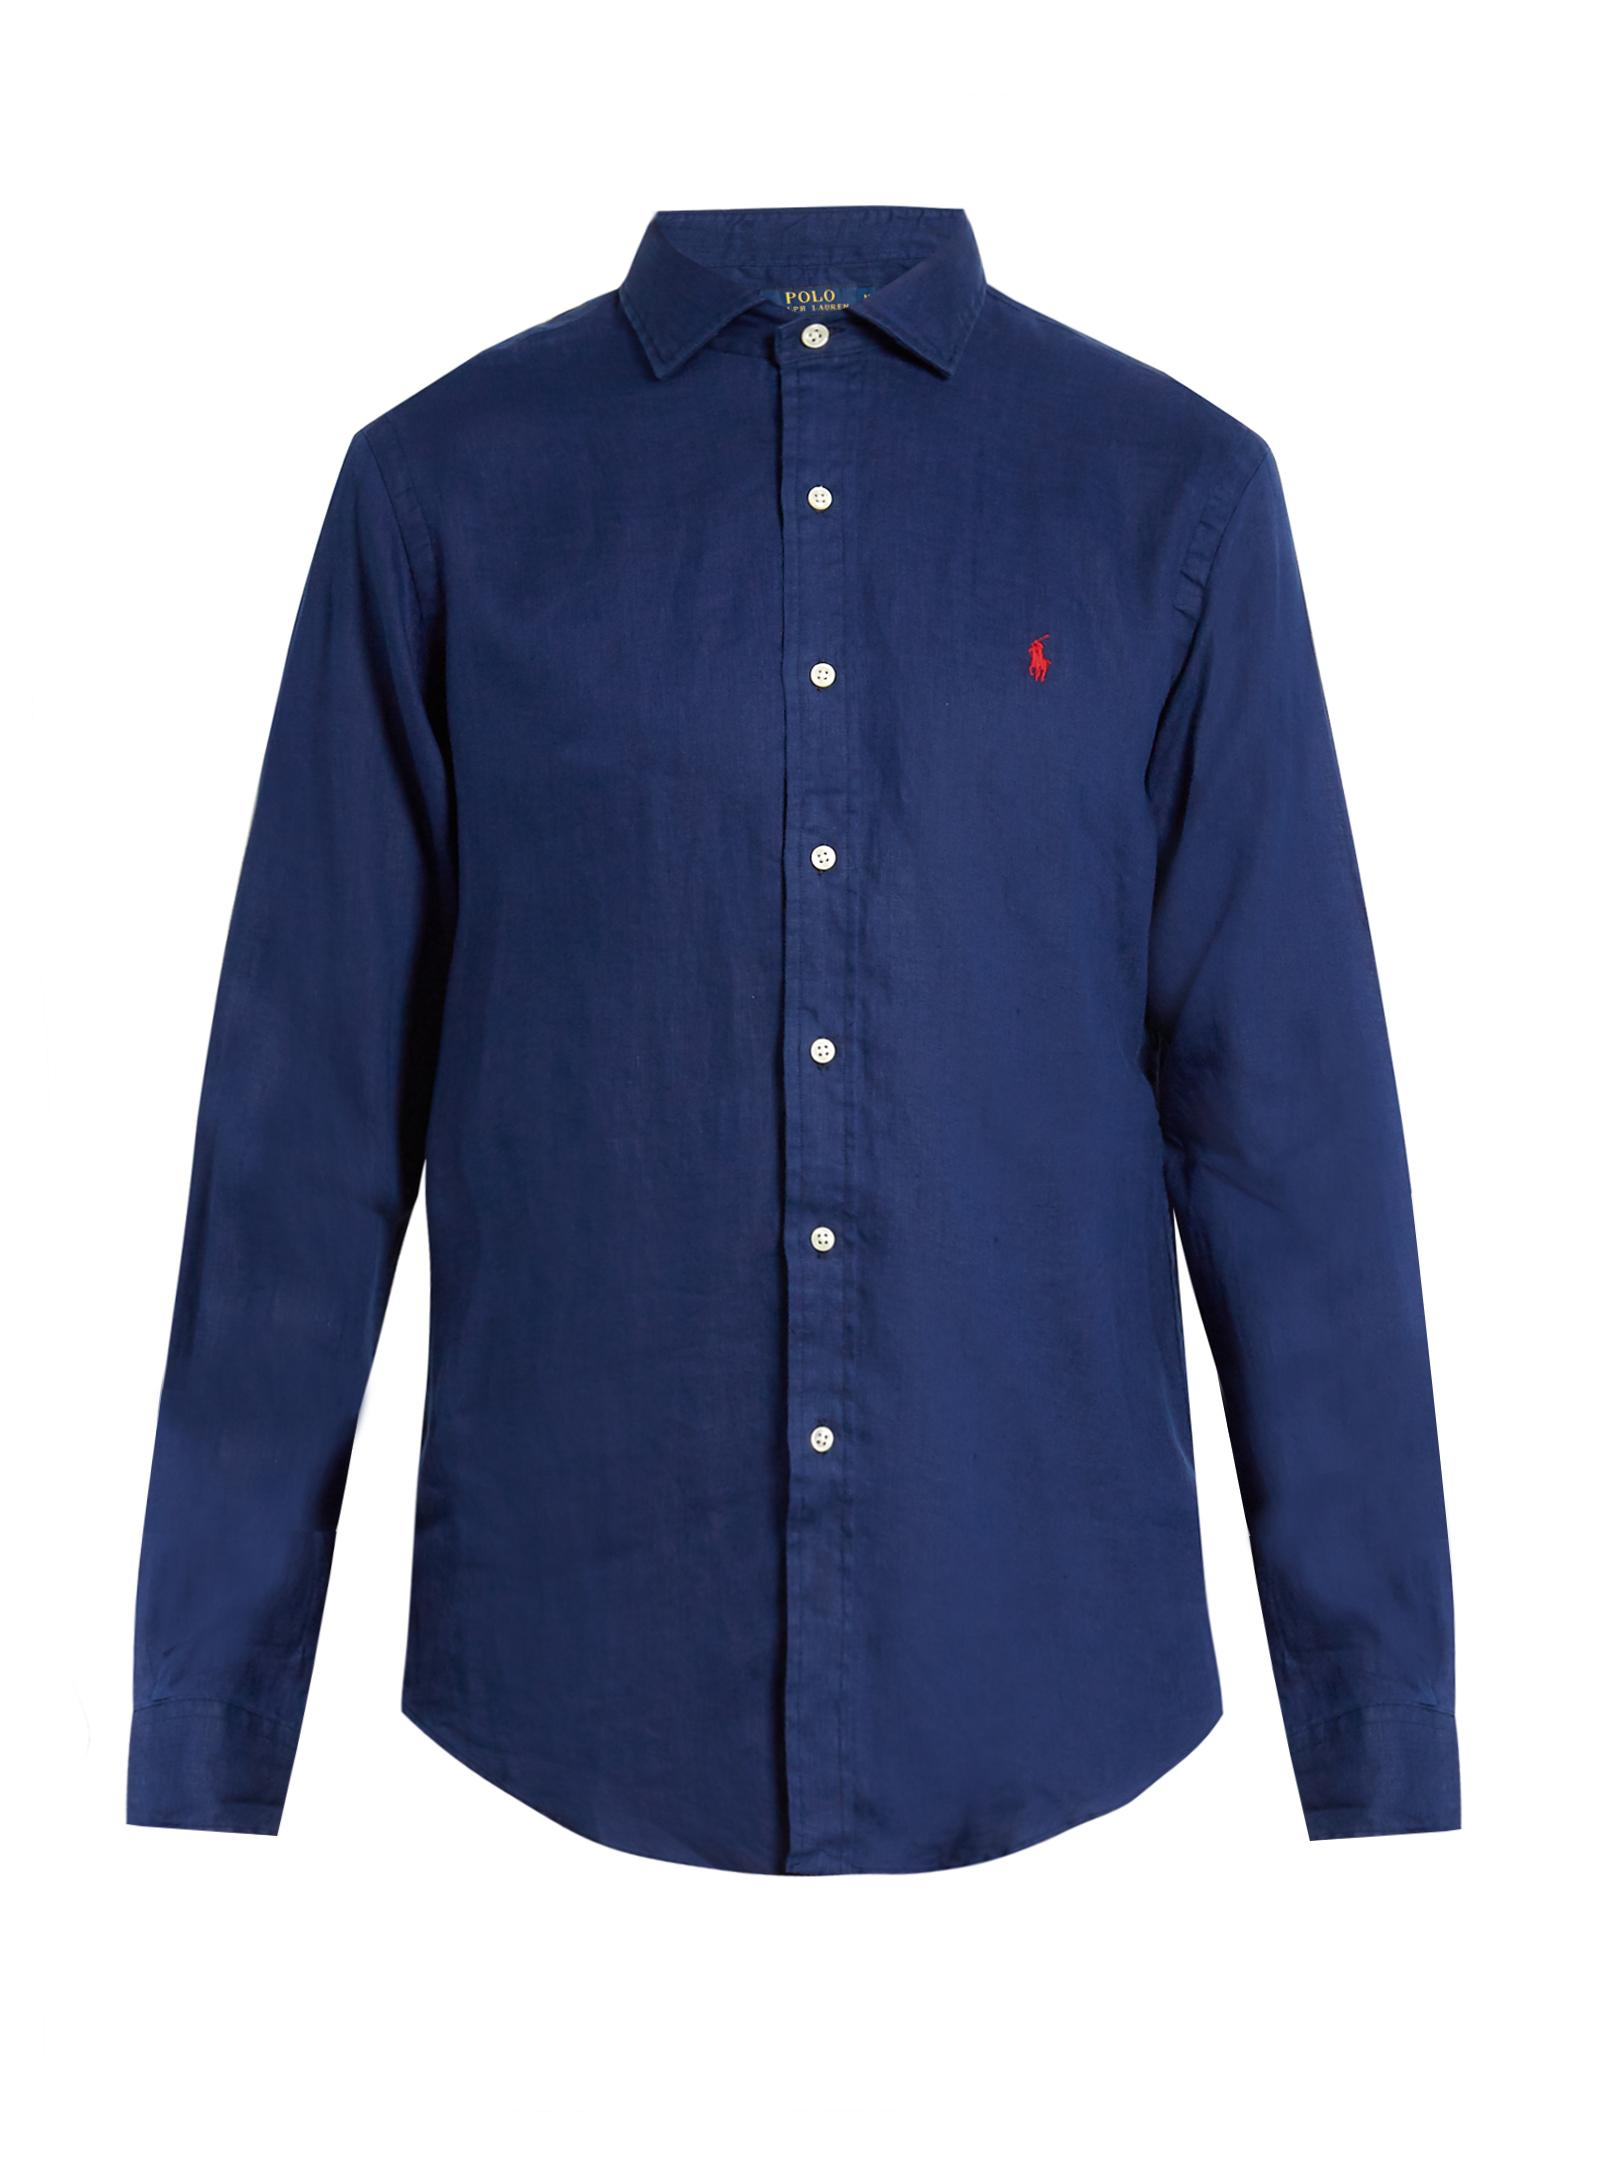 Polo ralph lauren spread collar linen shirt in blue for for Men s spread collar shirts